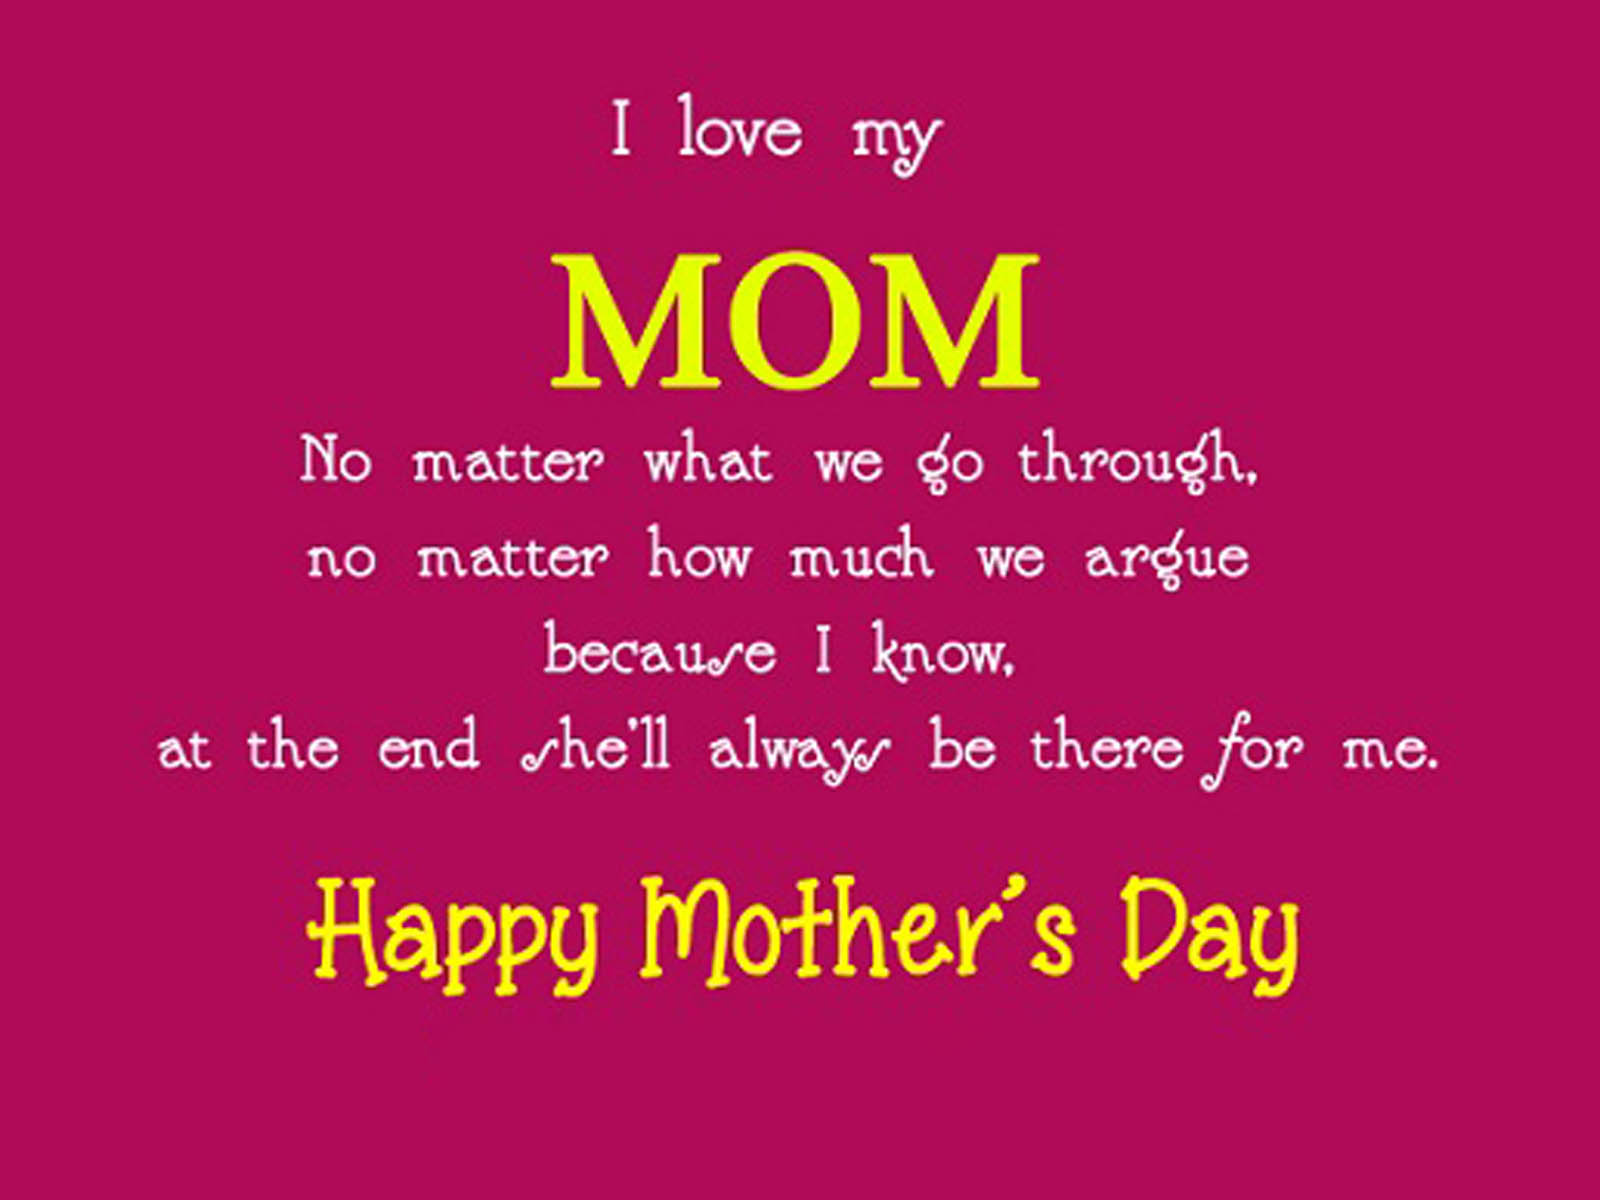 Mother s Day Wallpapers 2017 HD Free Download For Desktop With Quotes & Messages